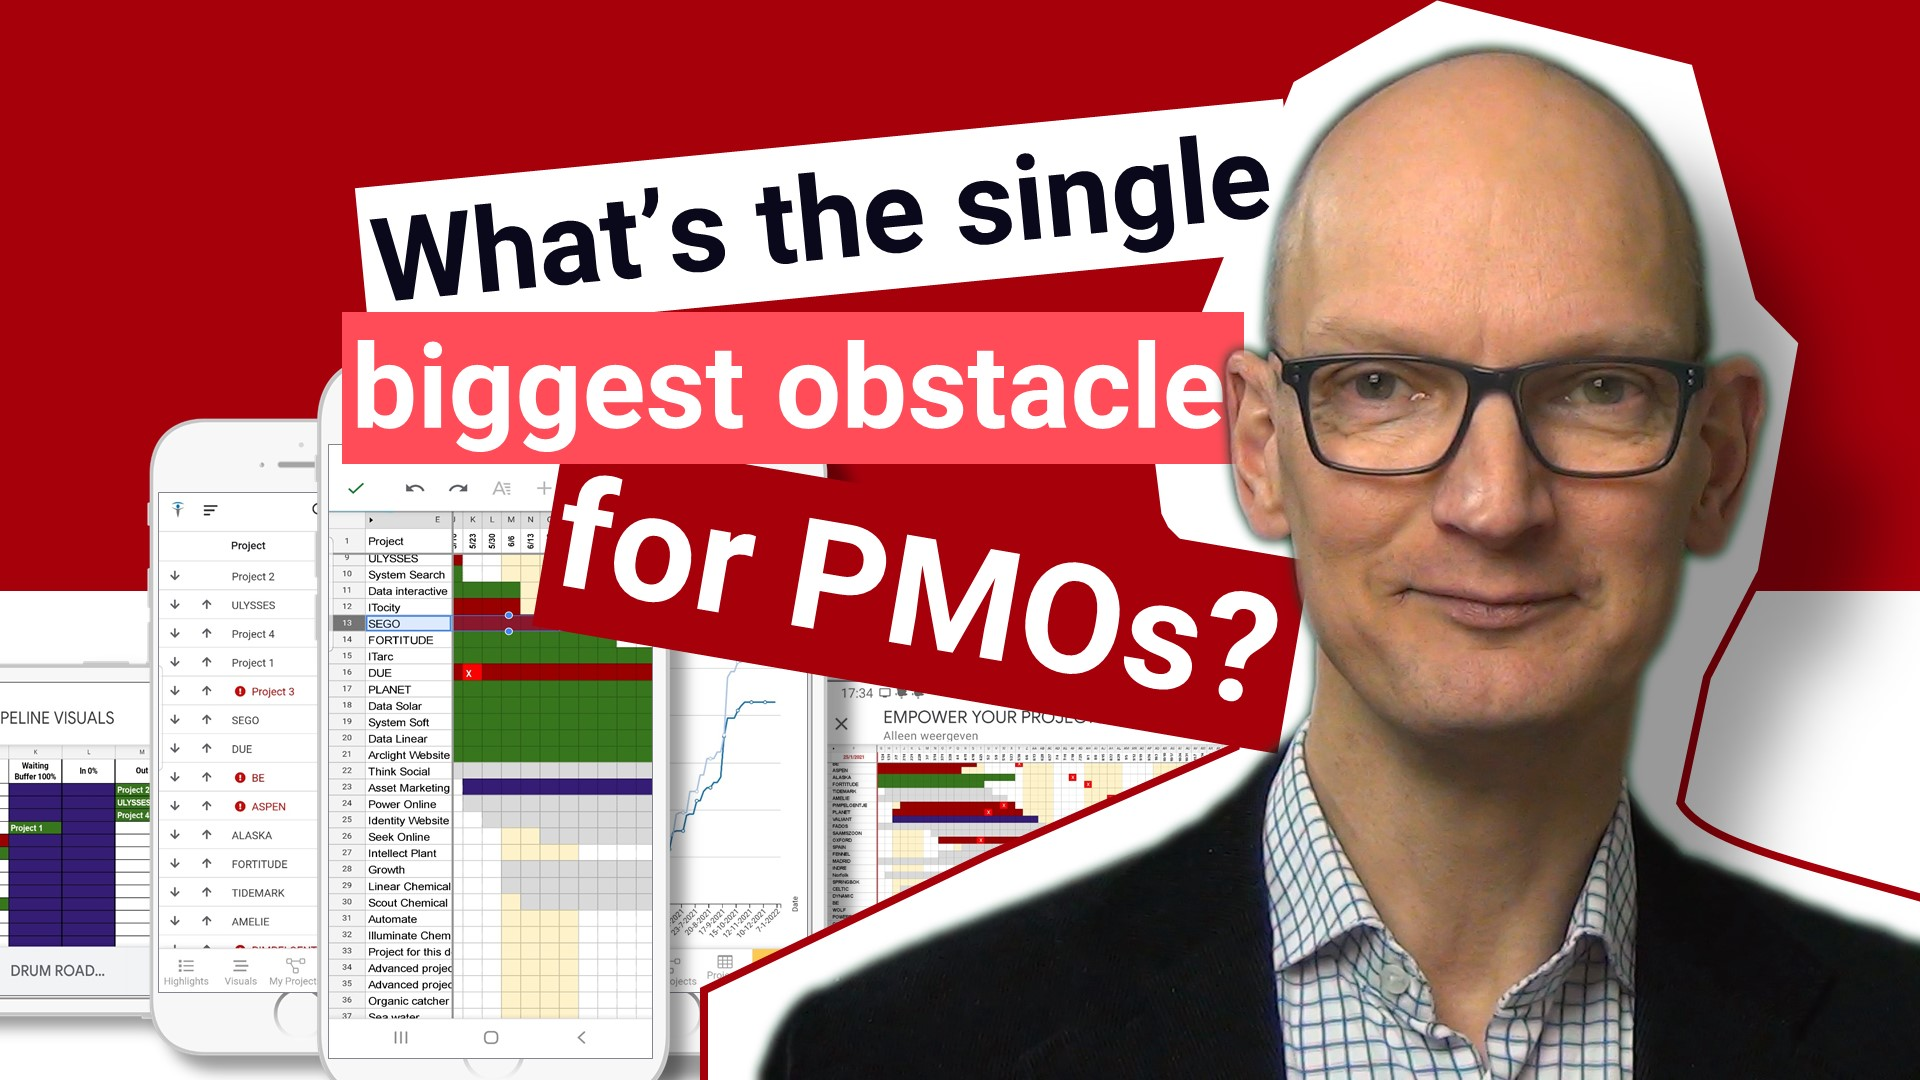 What's the single biggest obstacle for PMOs?